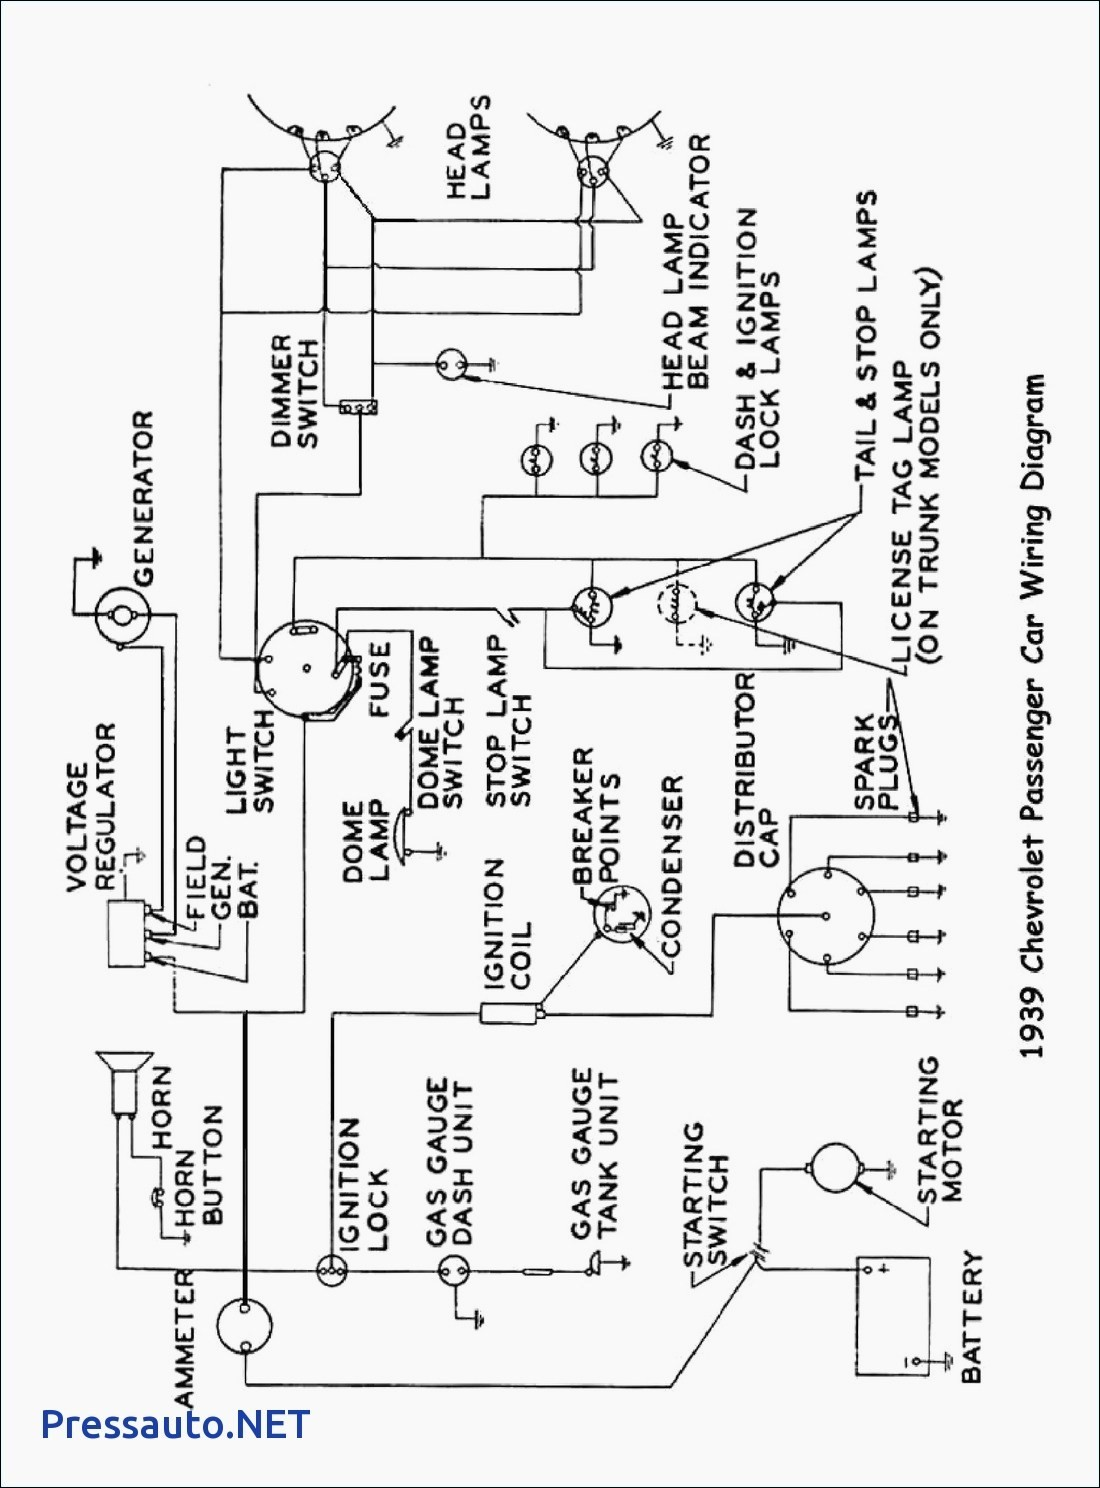 John Deere 314 Ignition Switch Wiring Diagram Resources X540 Download Diagrams U2022